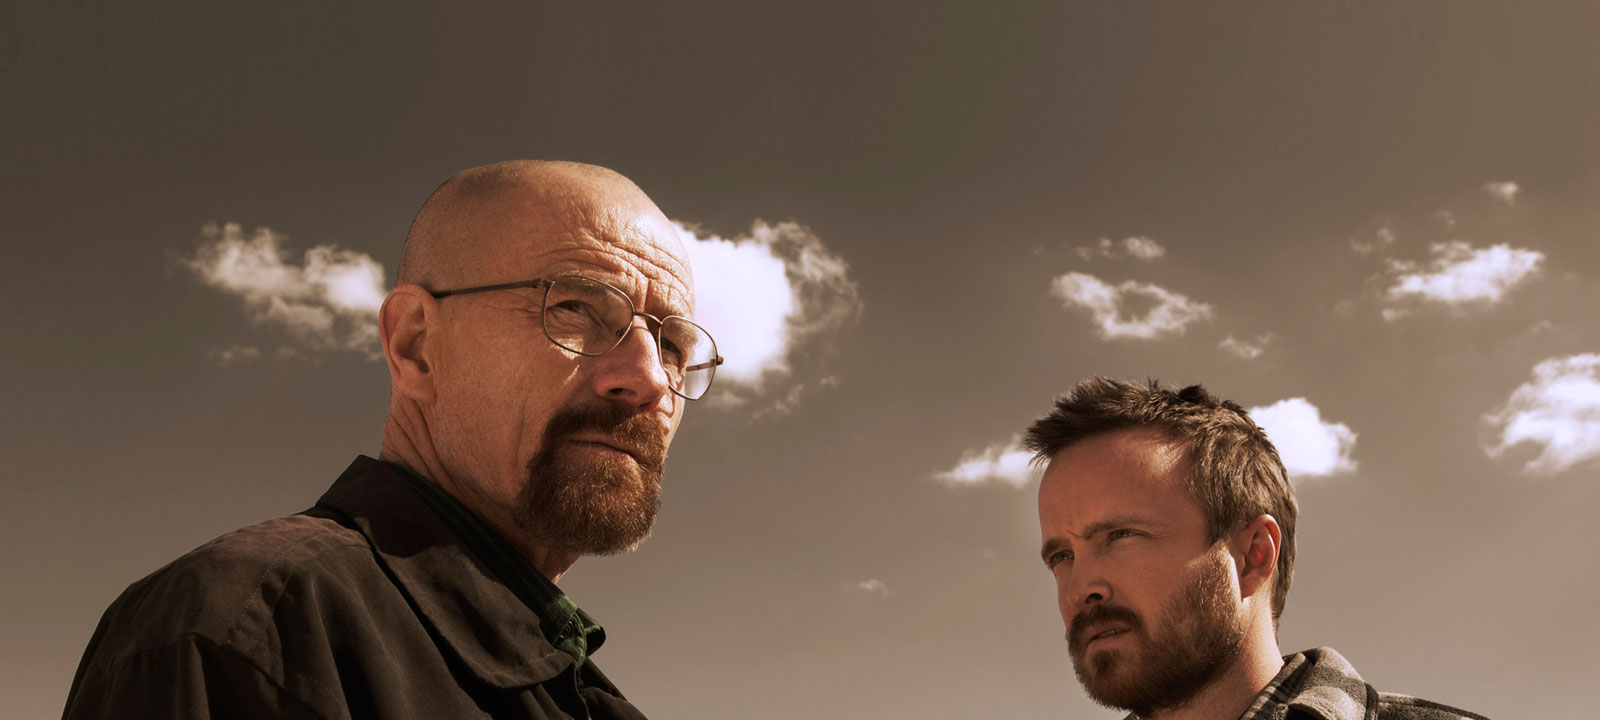 Breaking Bad raised the storytelling bar by setting aside patronising platitudes in favor of paying deep respect to their audiences' taste for exceptional visual storytelling and genuine emotional connections to characters.